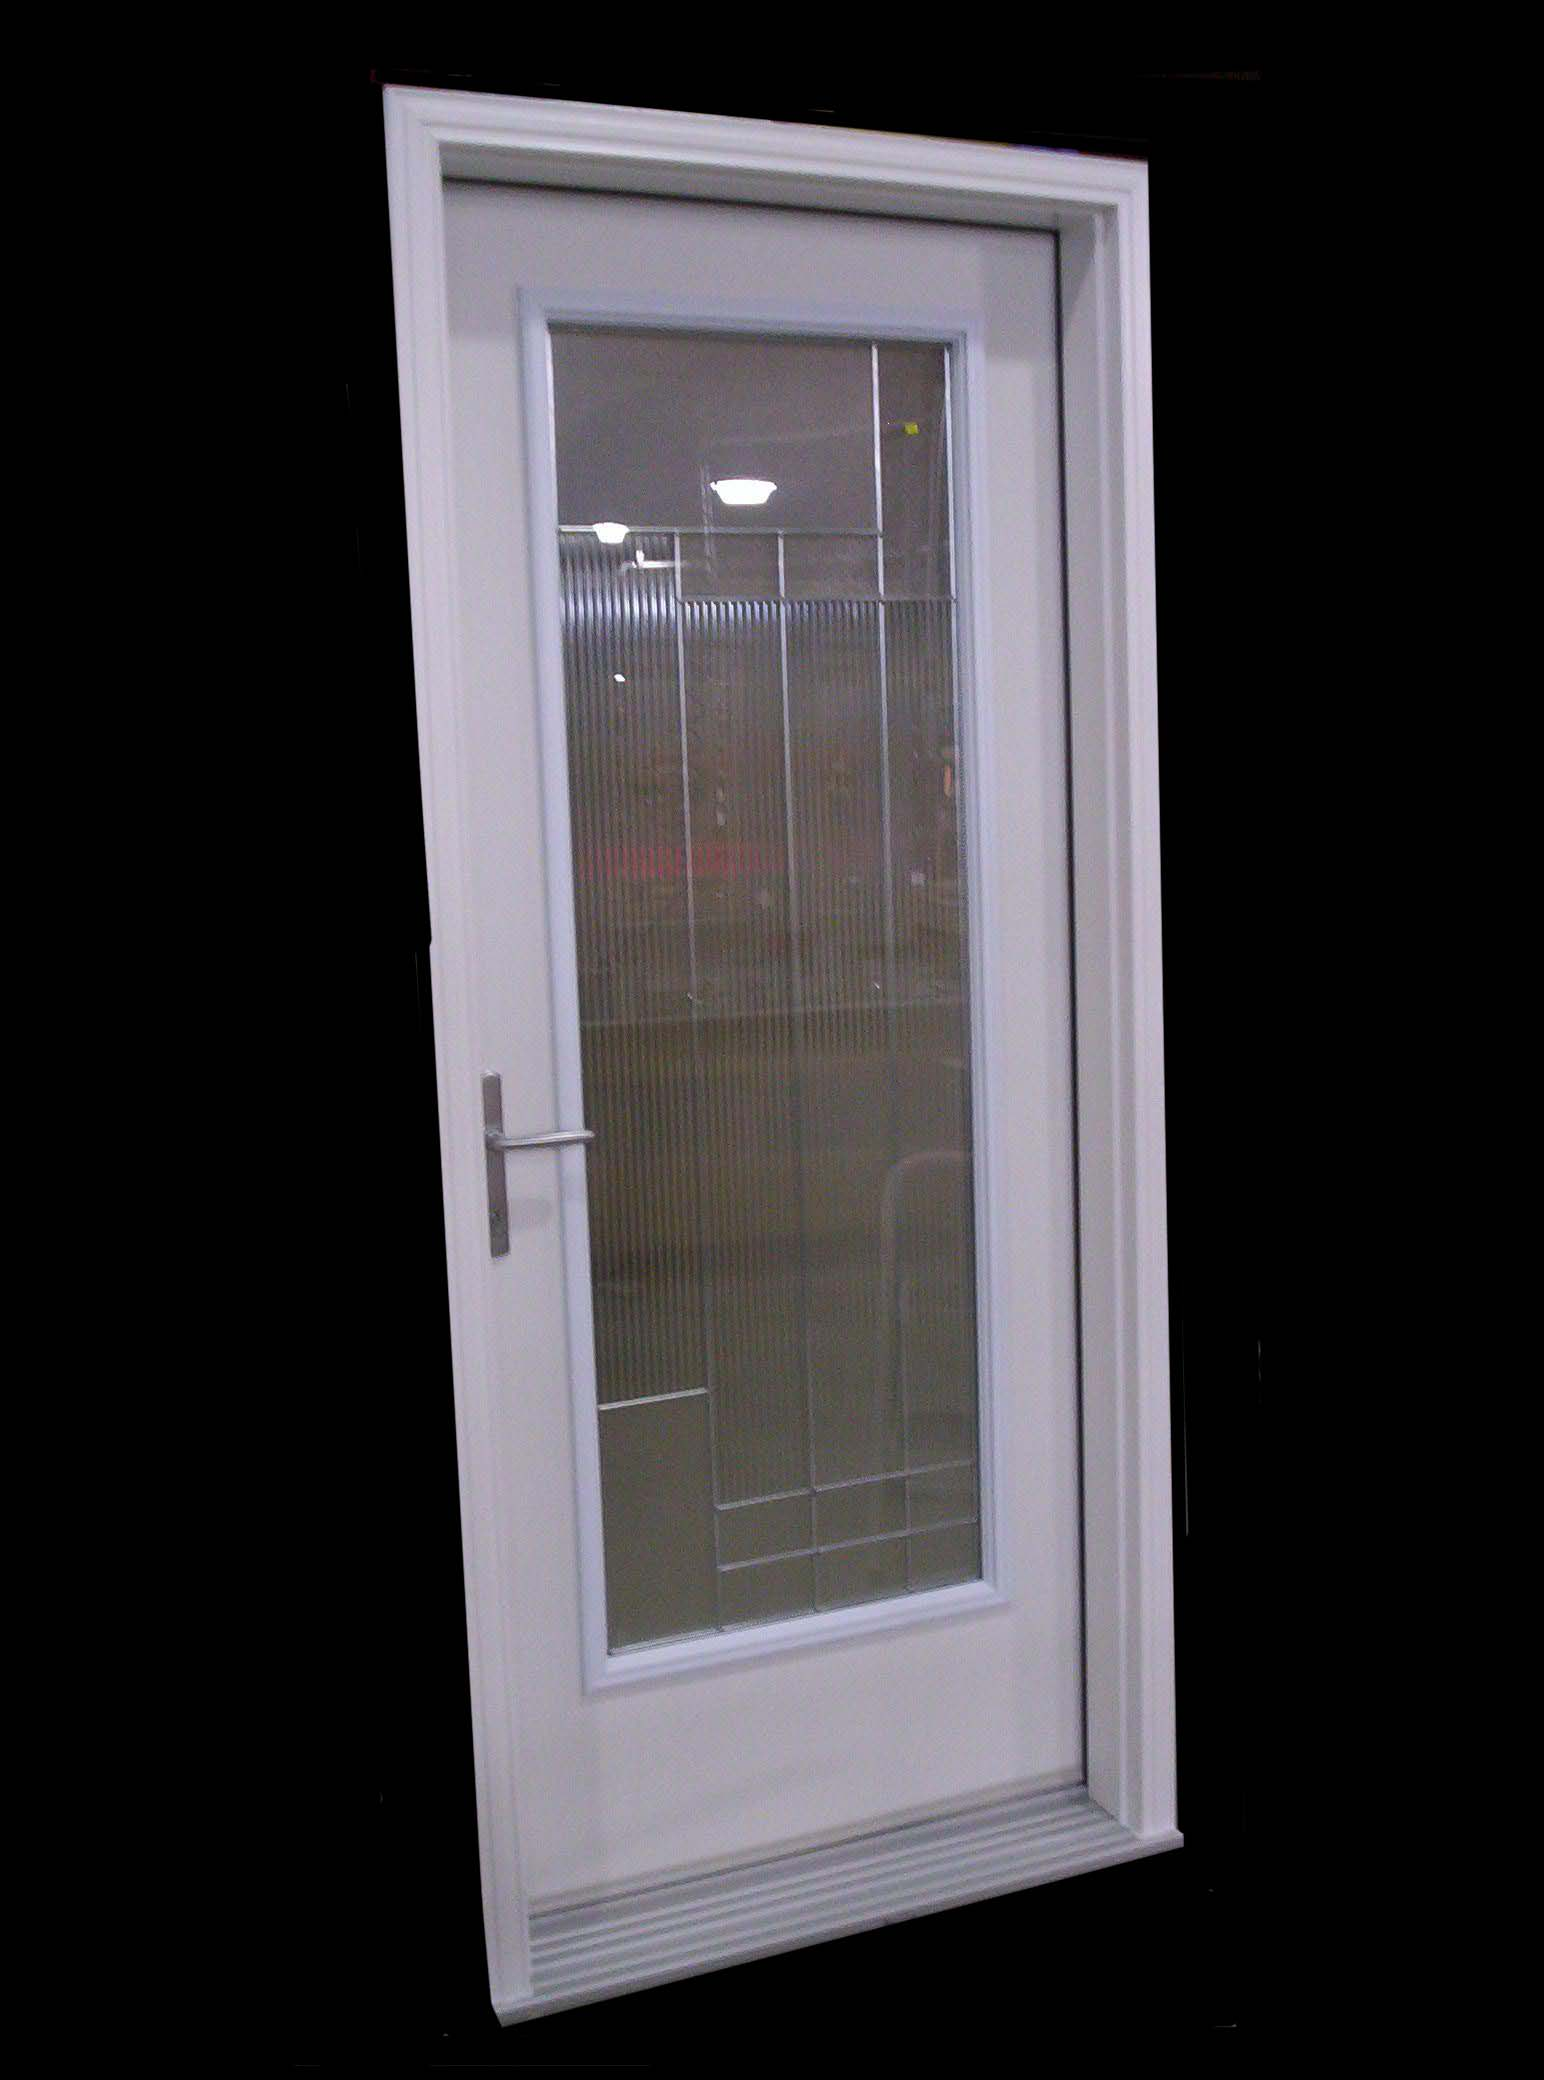 2080 #625972 RESIDENTIAL SECURITY DOOR SYSTEM GALLERY pic Residential Security Doors Exterior 41111544